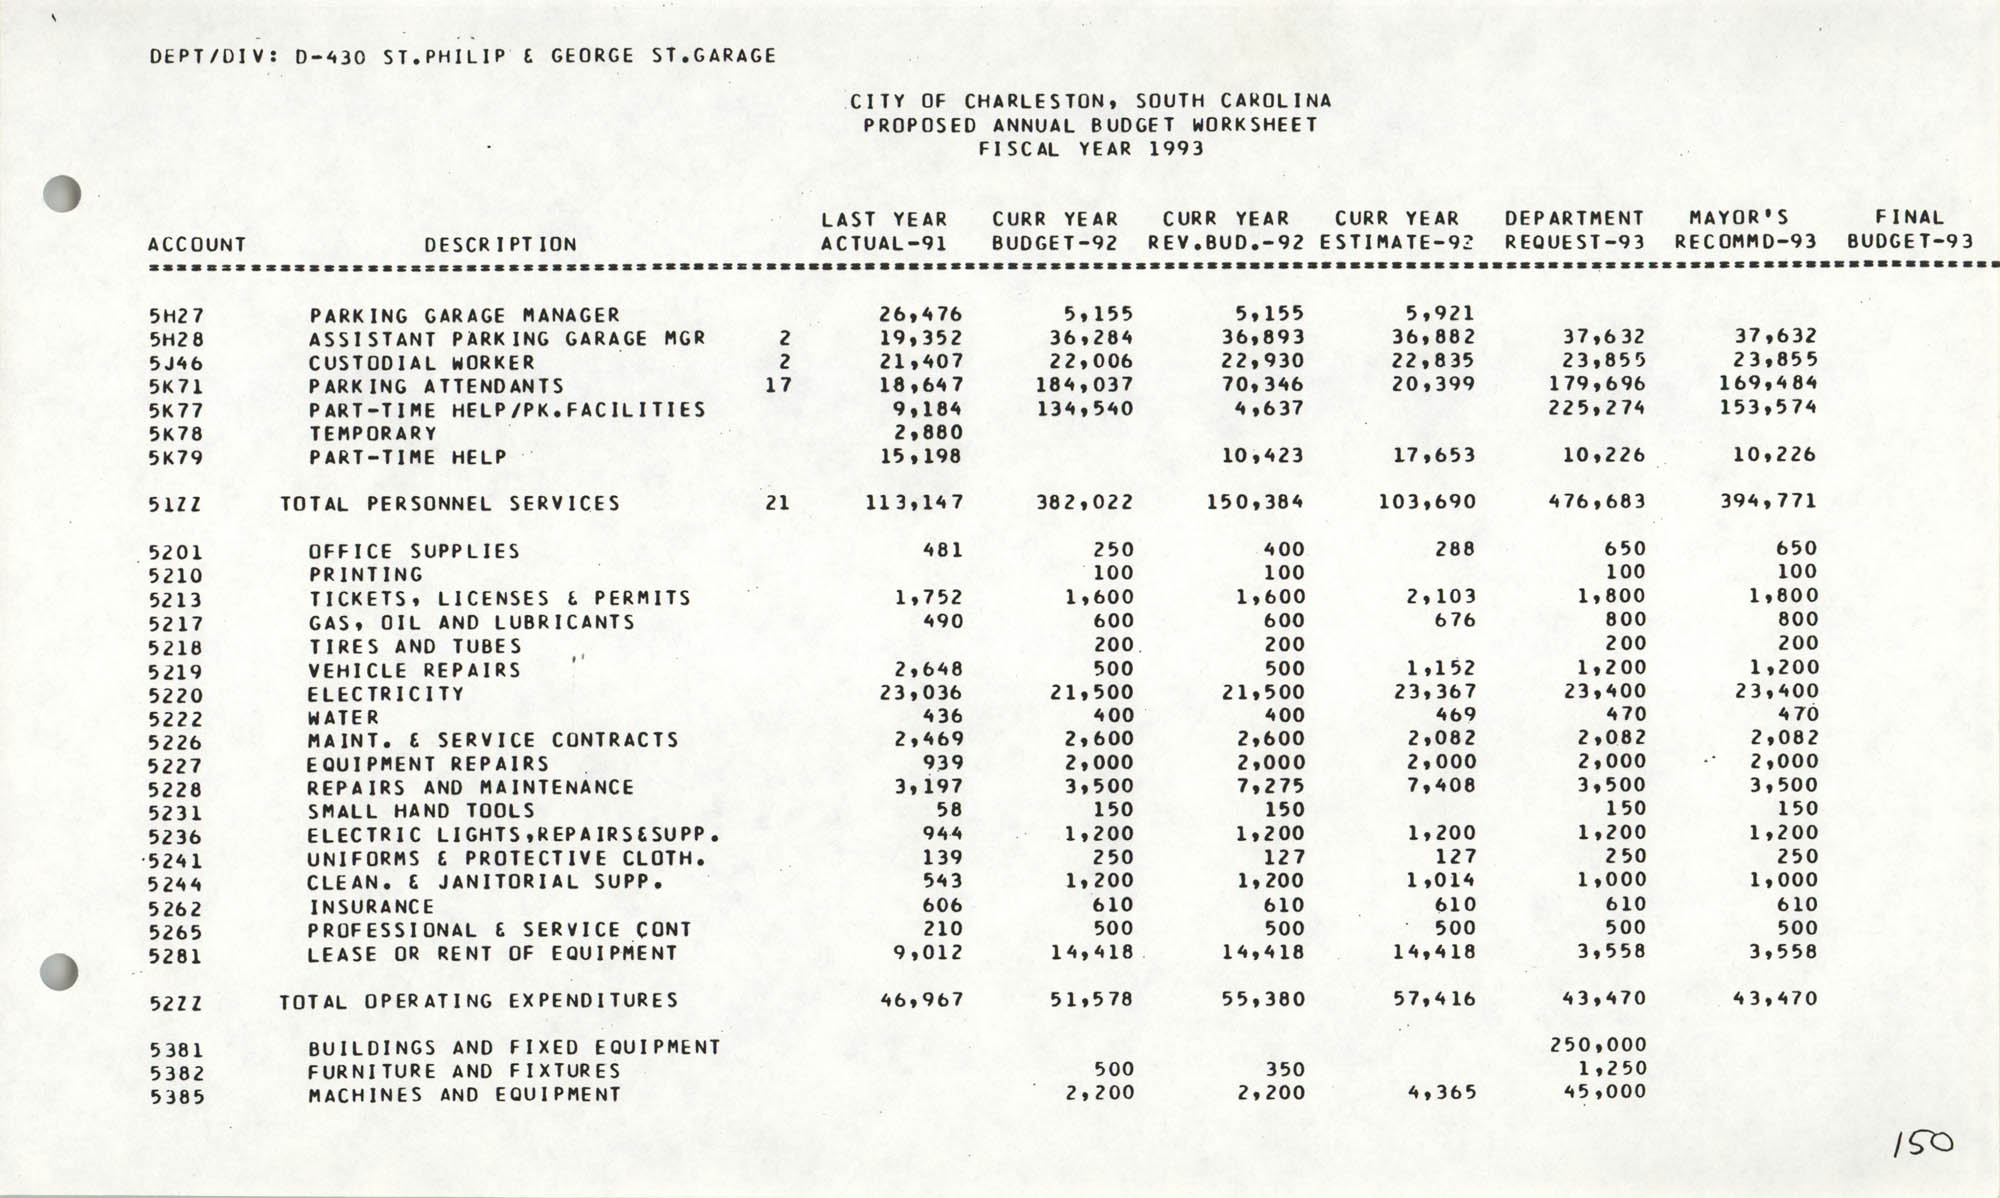 The City Council of Charleston, South Carolina, 1993 Budget, Page 150